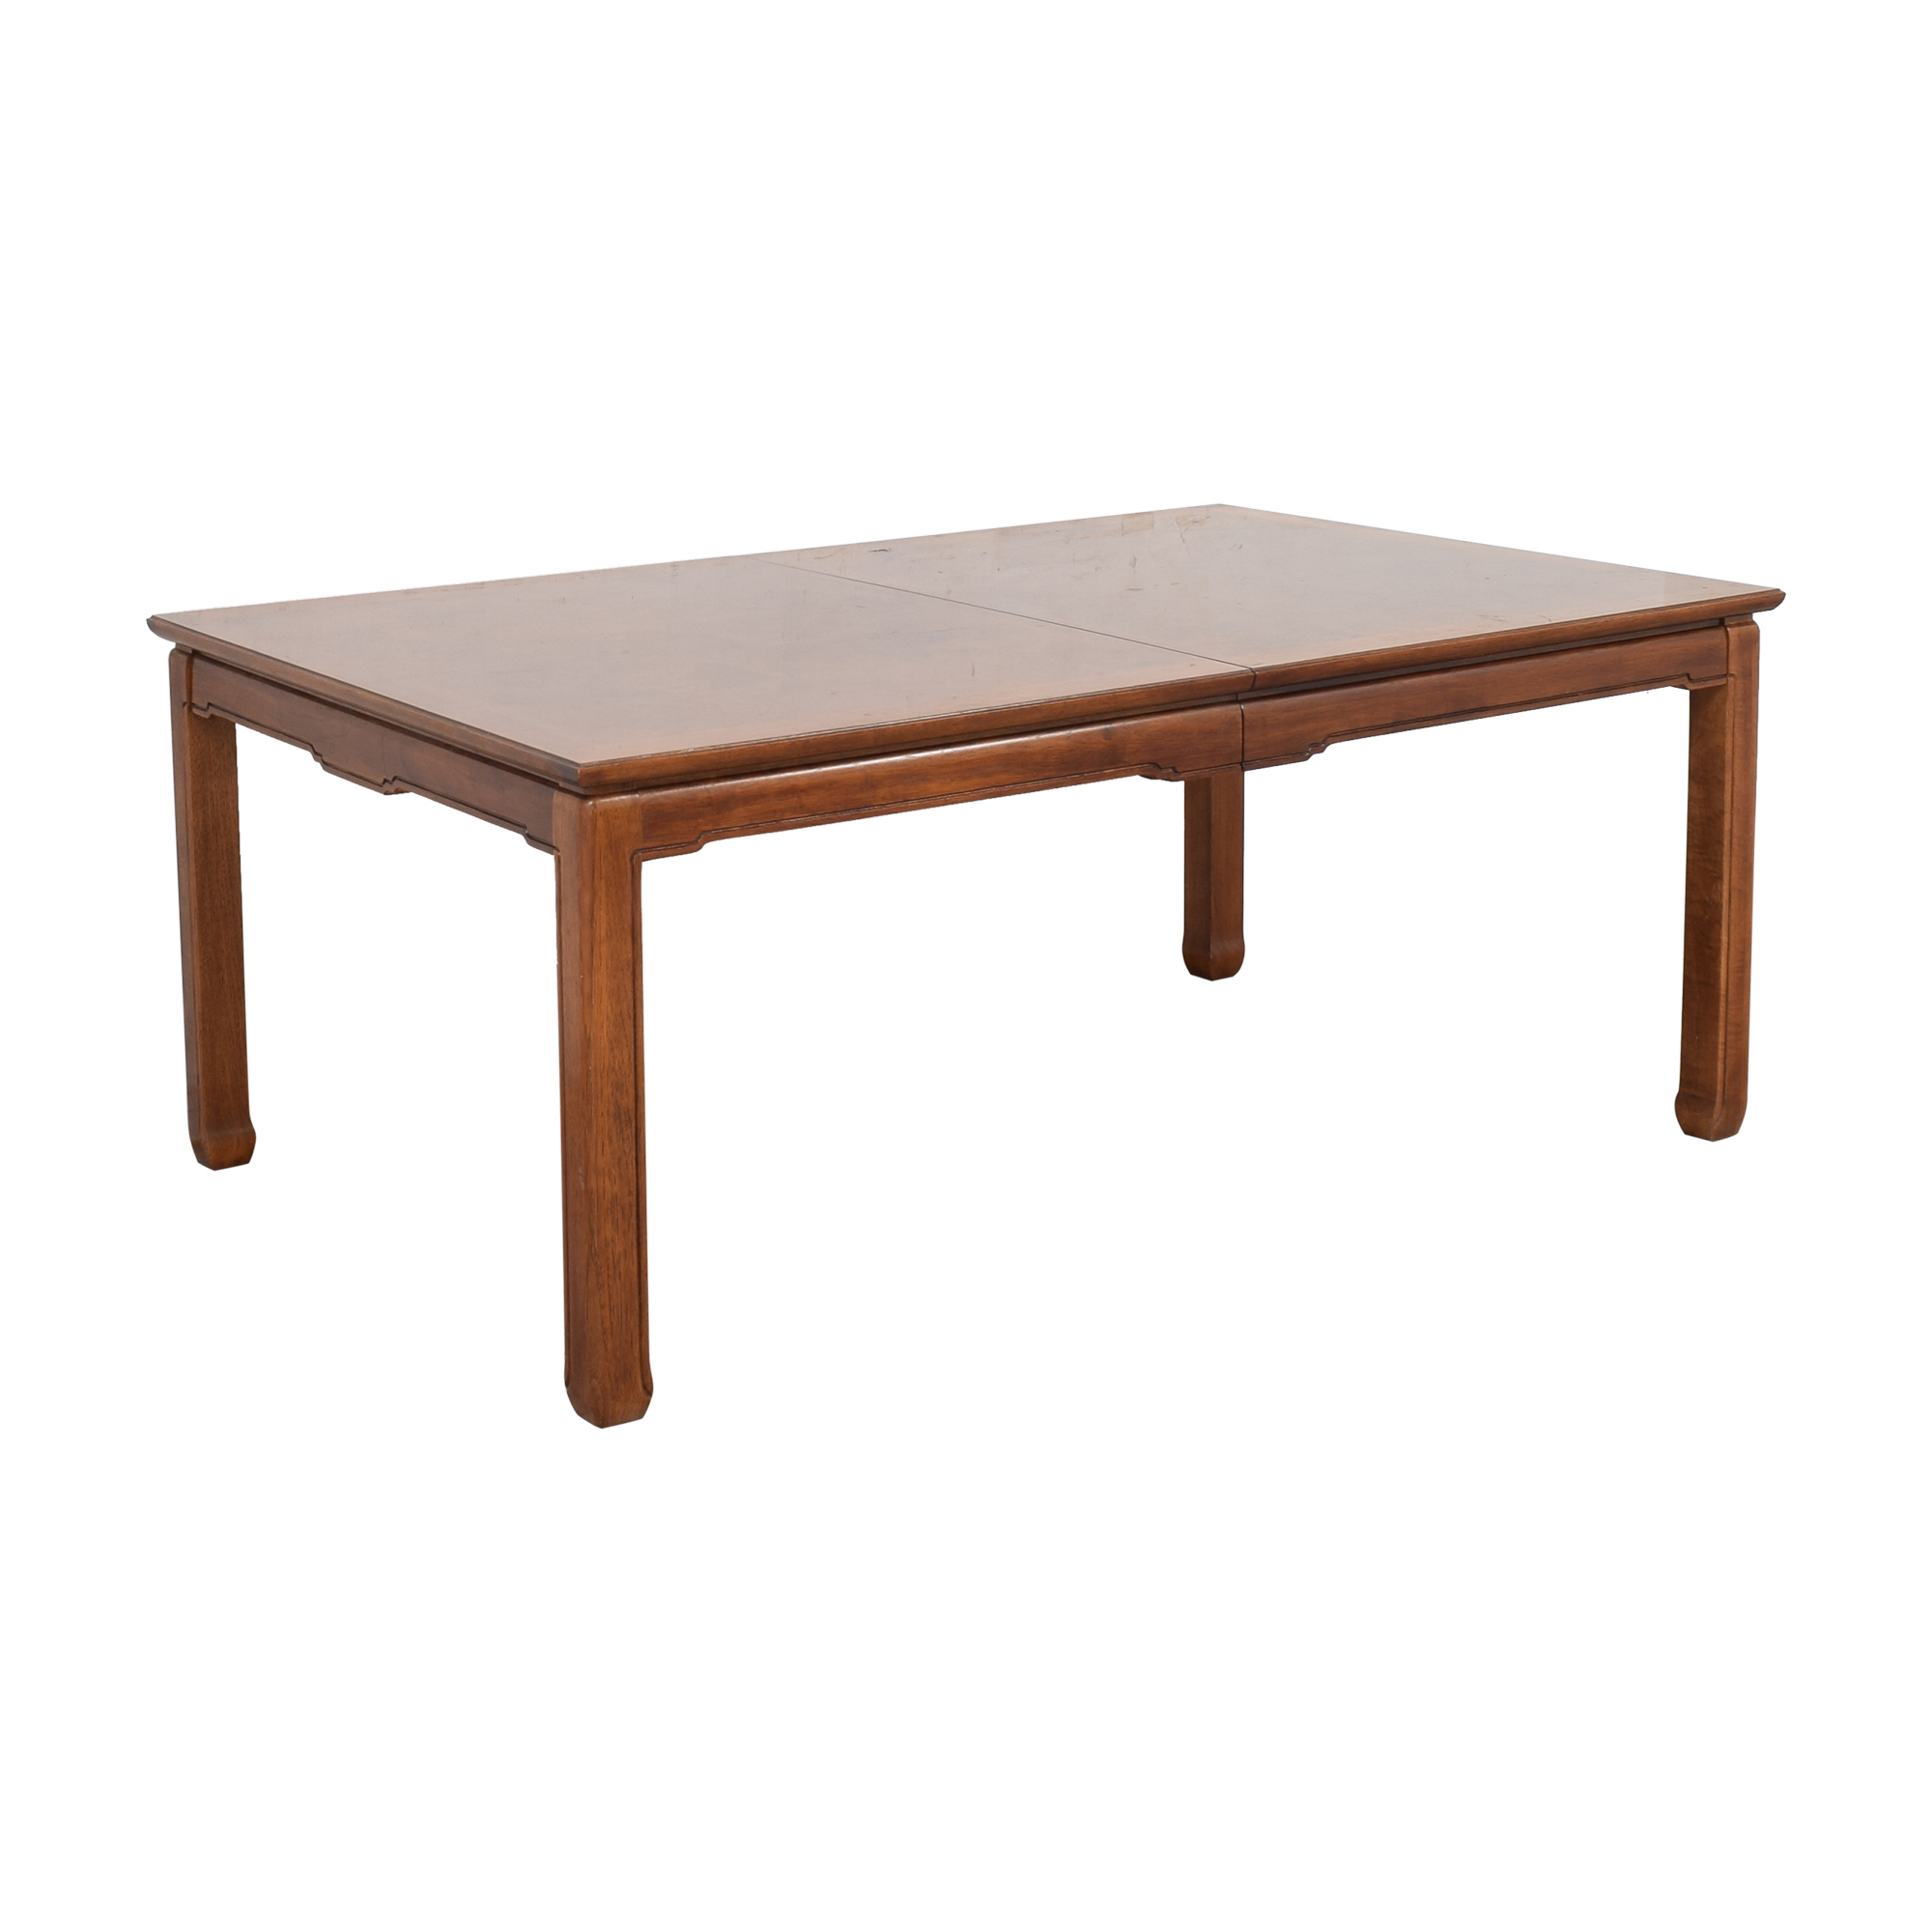 Thomasville Thomasville Mystique Extendable Dining Table Tables